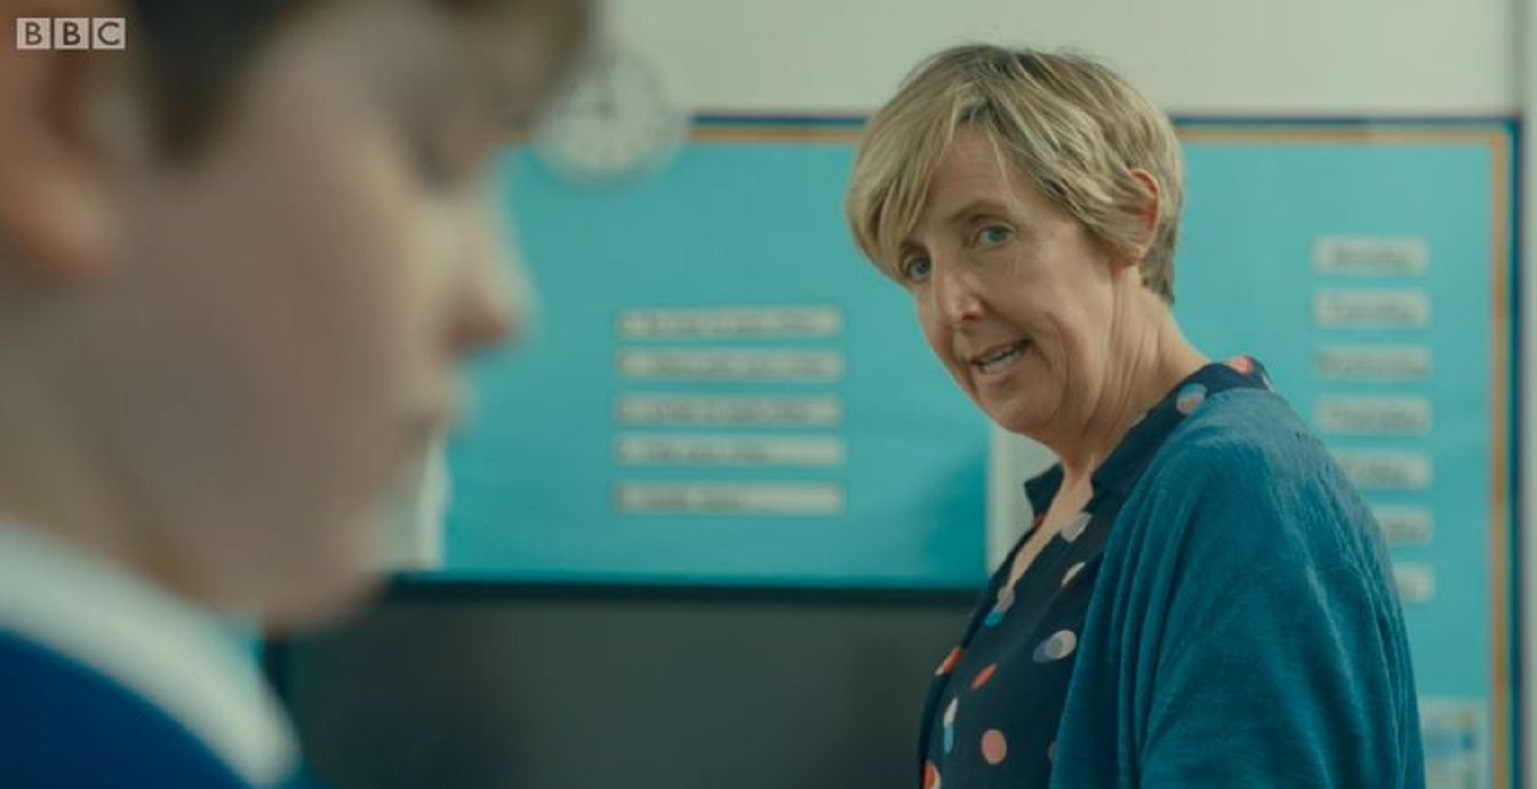 The A Word: Julie Hesmondhalgh delights fans as Joe's teacher Heather